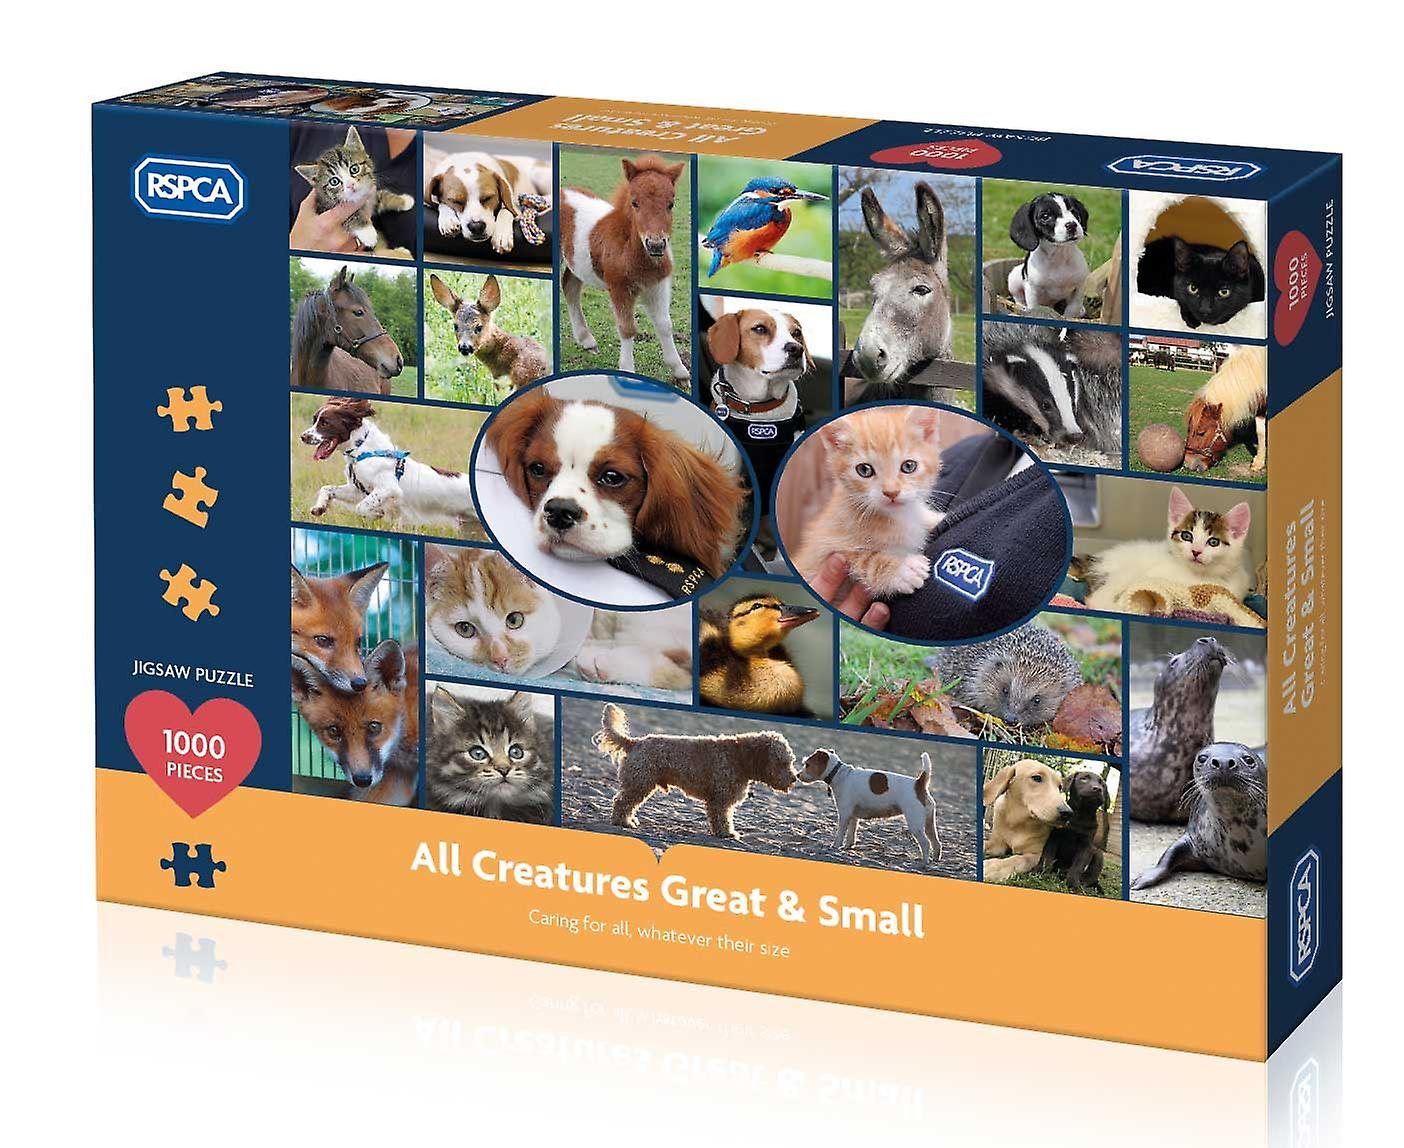 Gibsons RSPCA - All Creatures Great & Small Jigsaw Puzzle (1000 pieces)